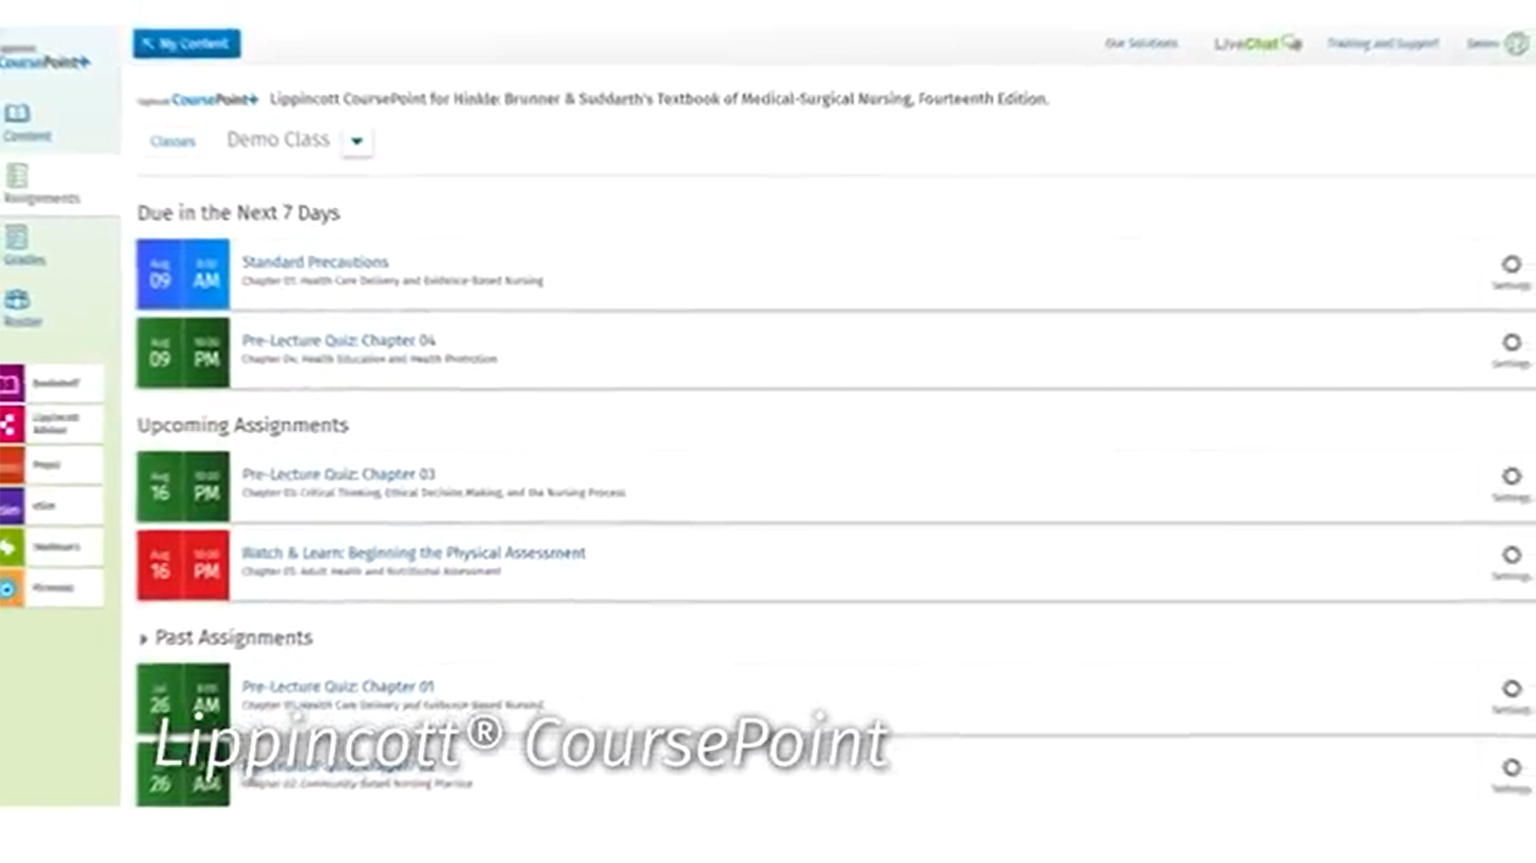 Screenshot from Lippincott CoursePoint sizzle video